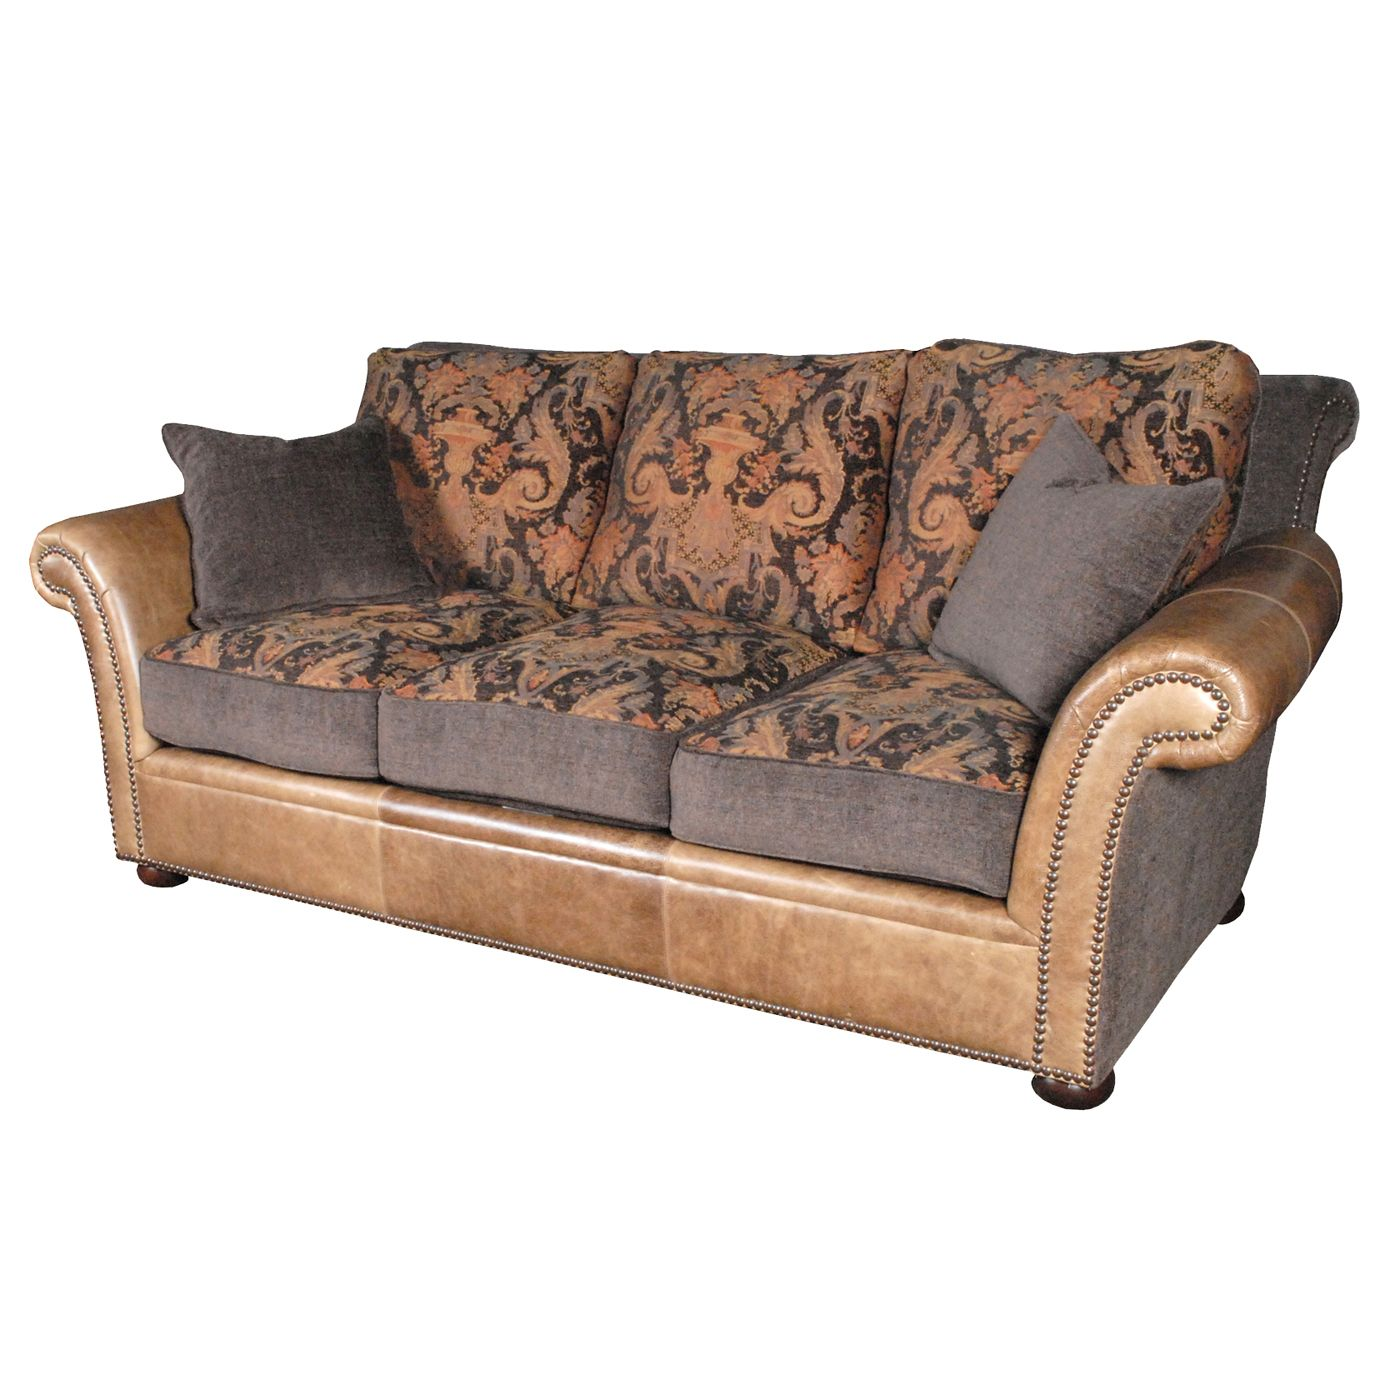 design used me cheap wonderful images cupboard furniture leather sale stores of mediscount living room near delaware in full size for forale reclining sofas clearance milton